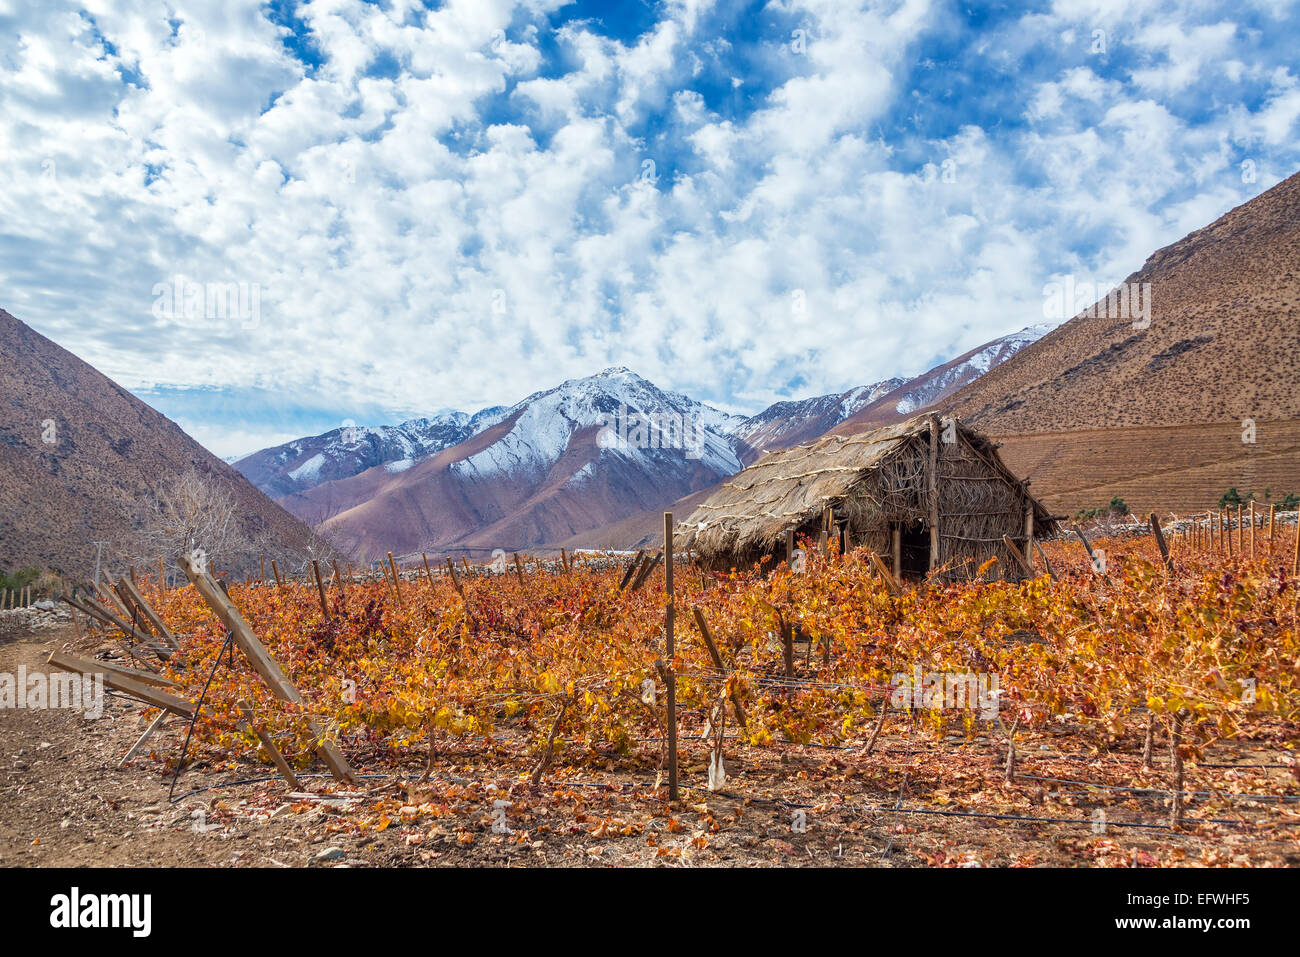 Vineyard in the Elqui Valley for pisco production with Andes mountains in the background in Chile - Stock Image